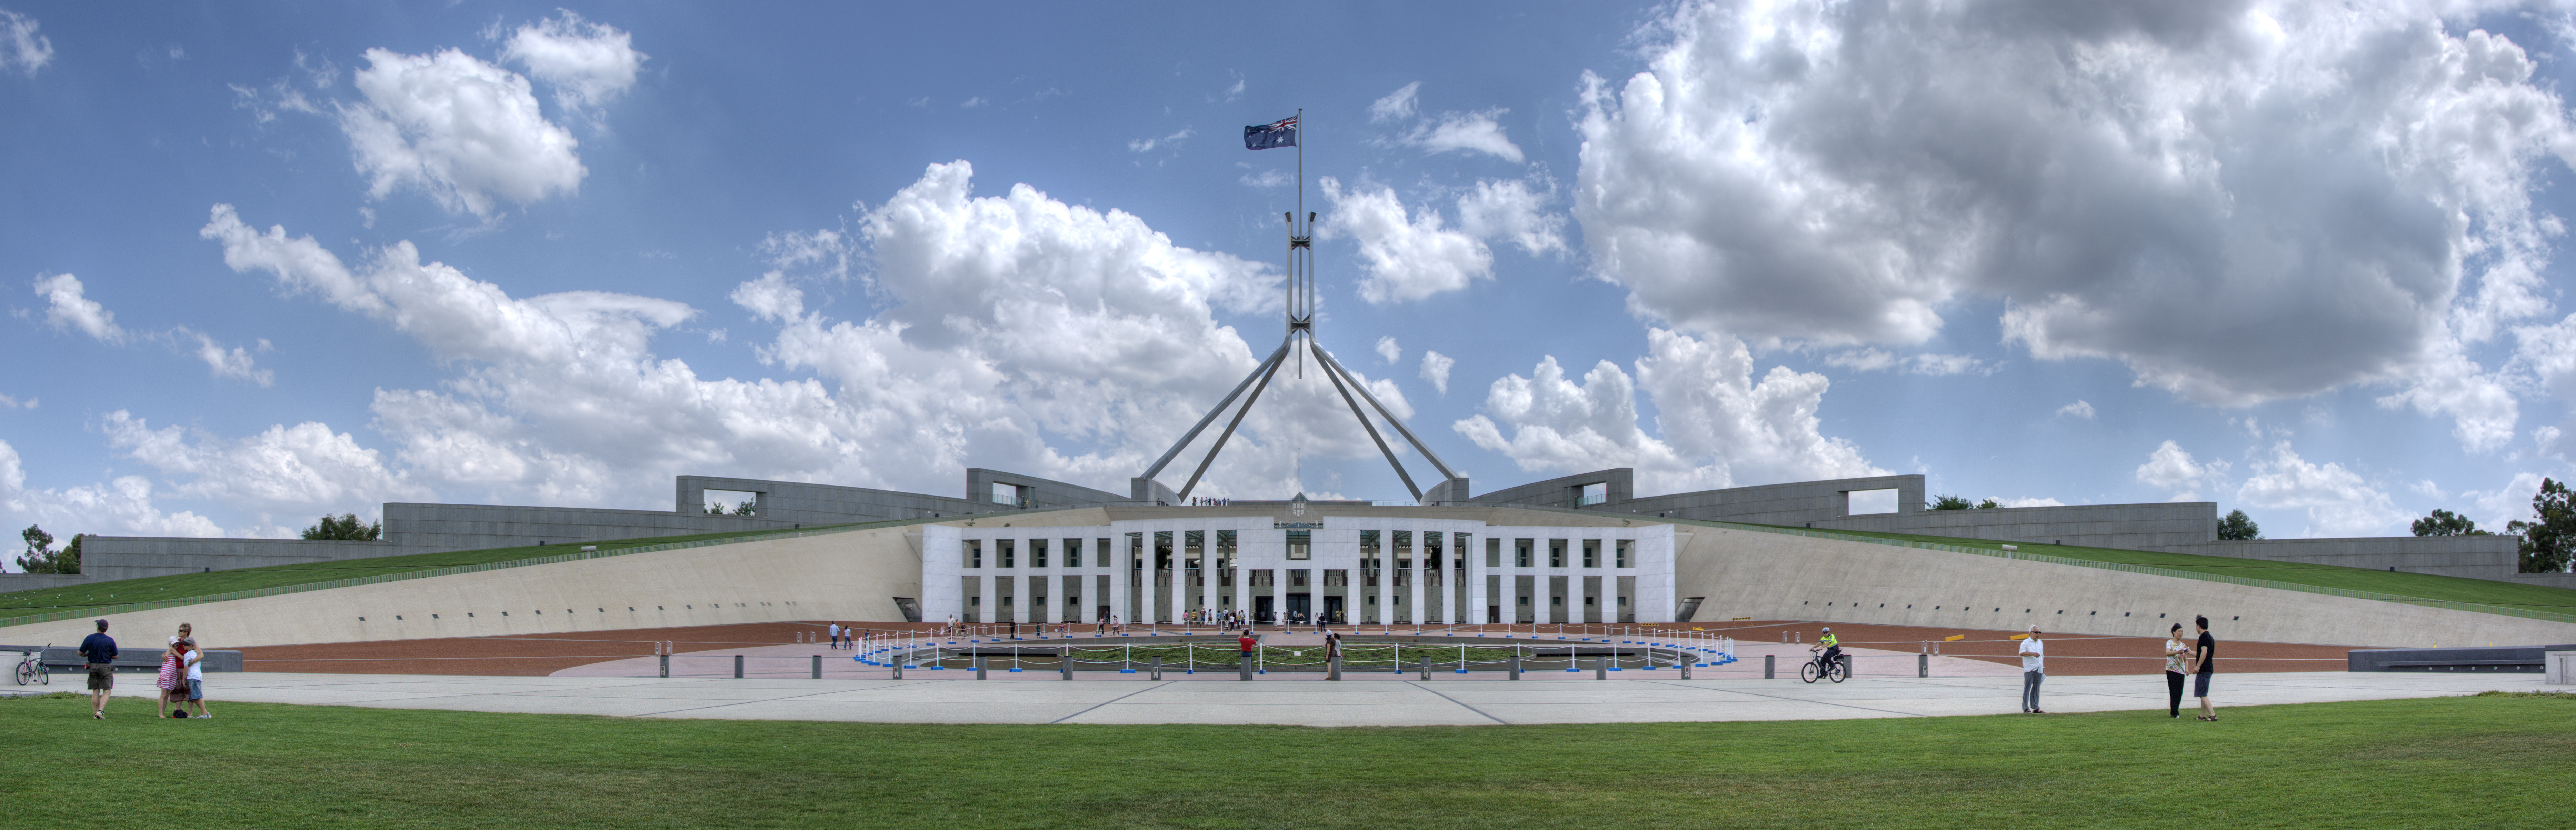 File:Parliament House Canberra.jpg - Wikimedia Commons